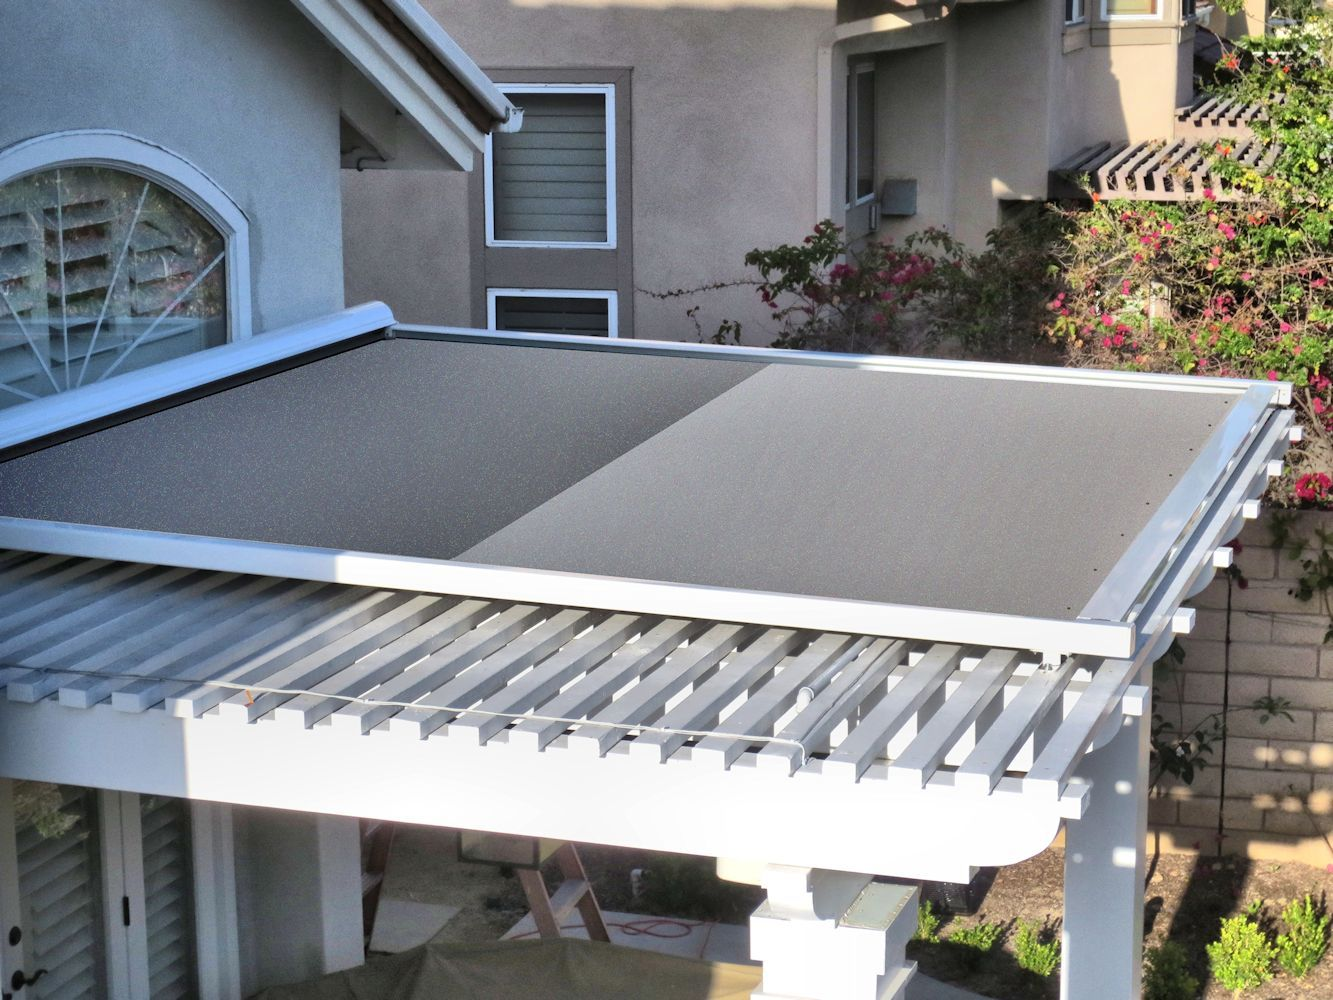 Retractable Shade Panel On Lattice Patio Cover By Superior Awning Southern California